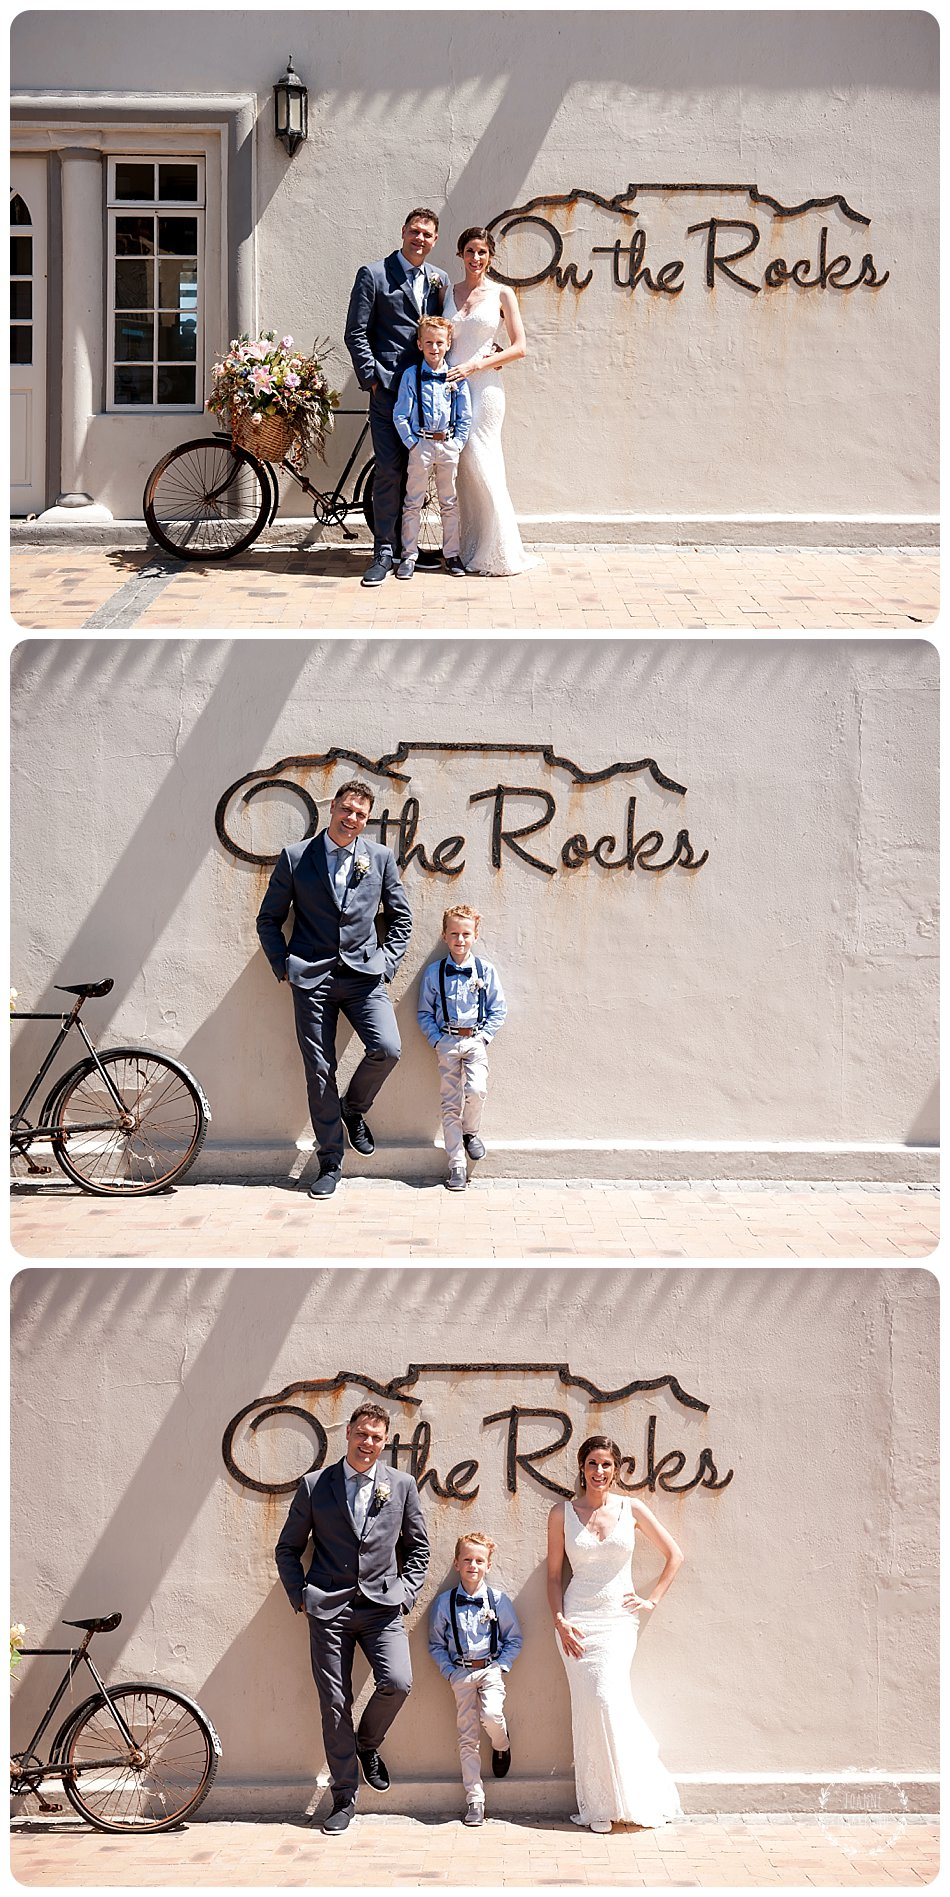 blouberg beach wedding photography at on the rocks